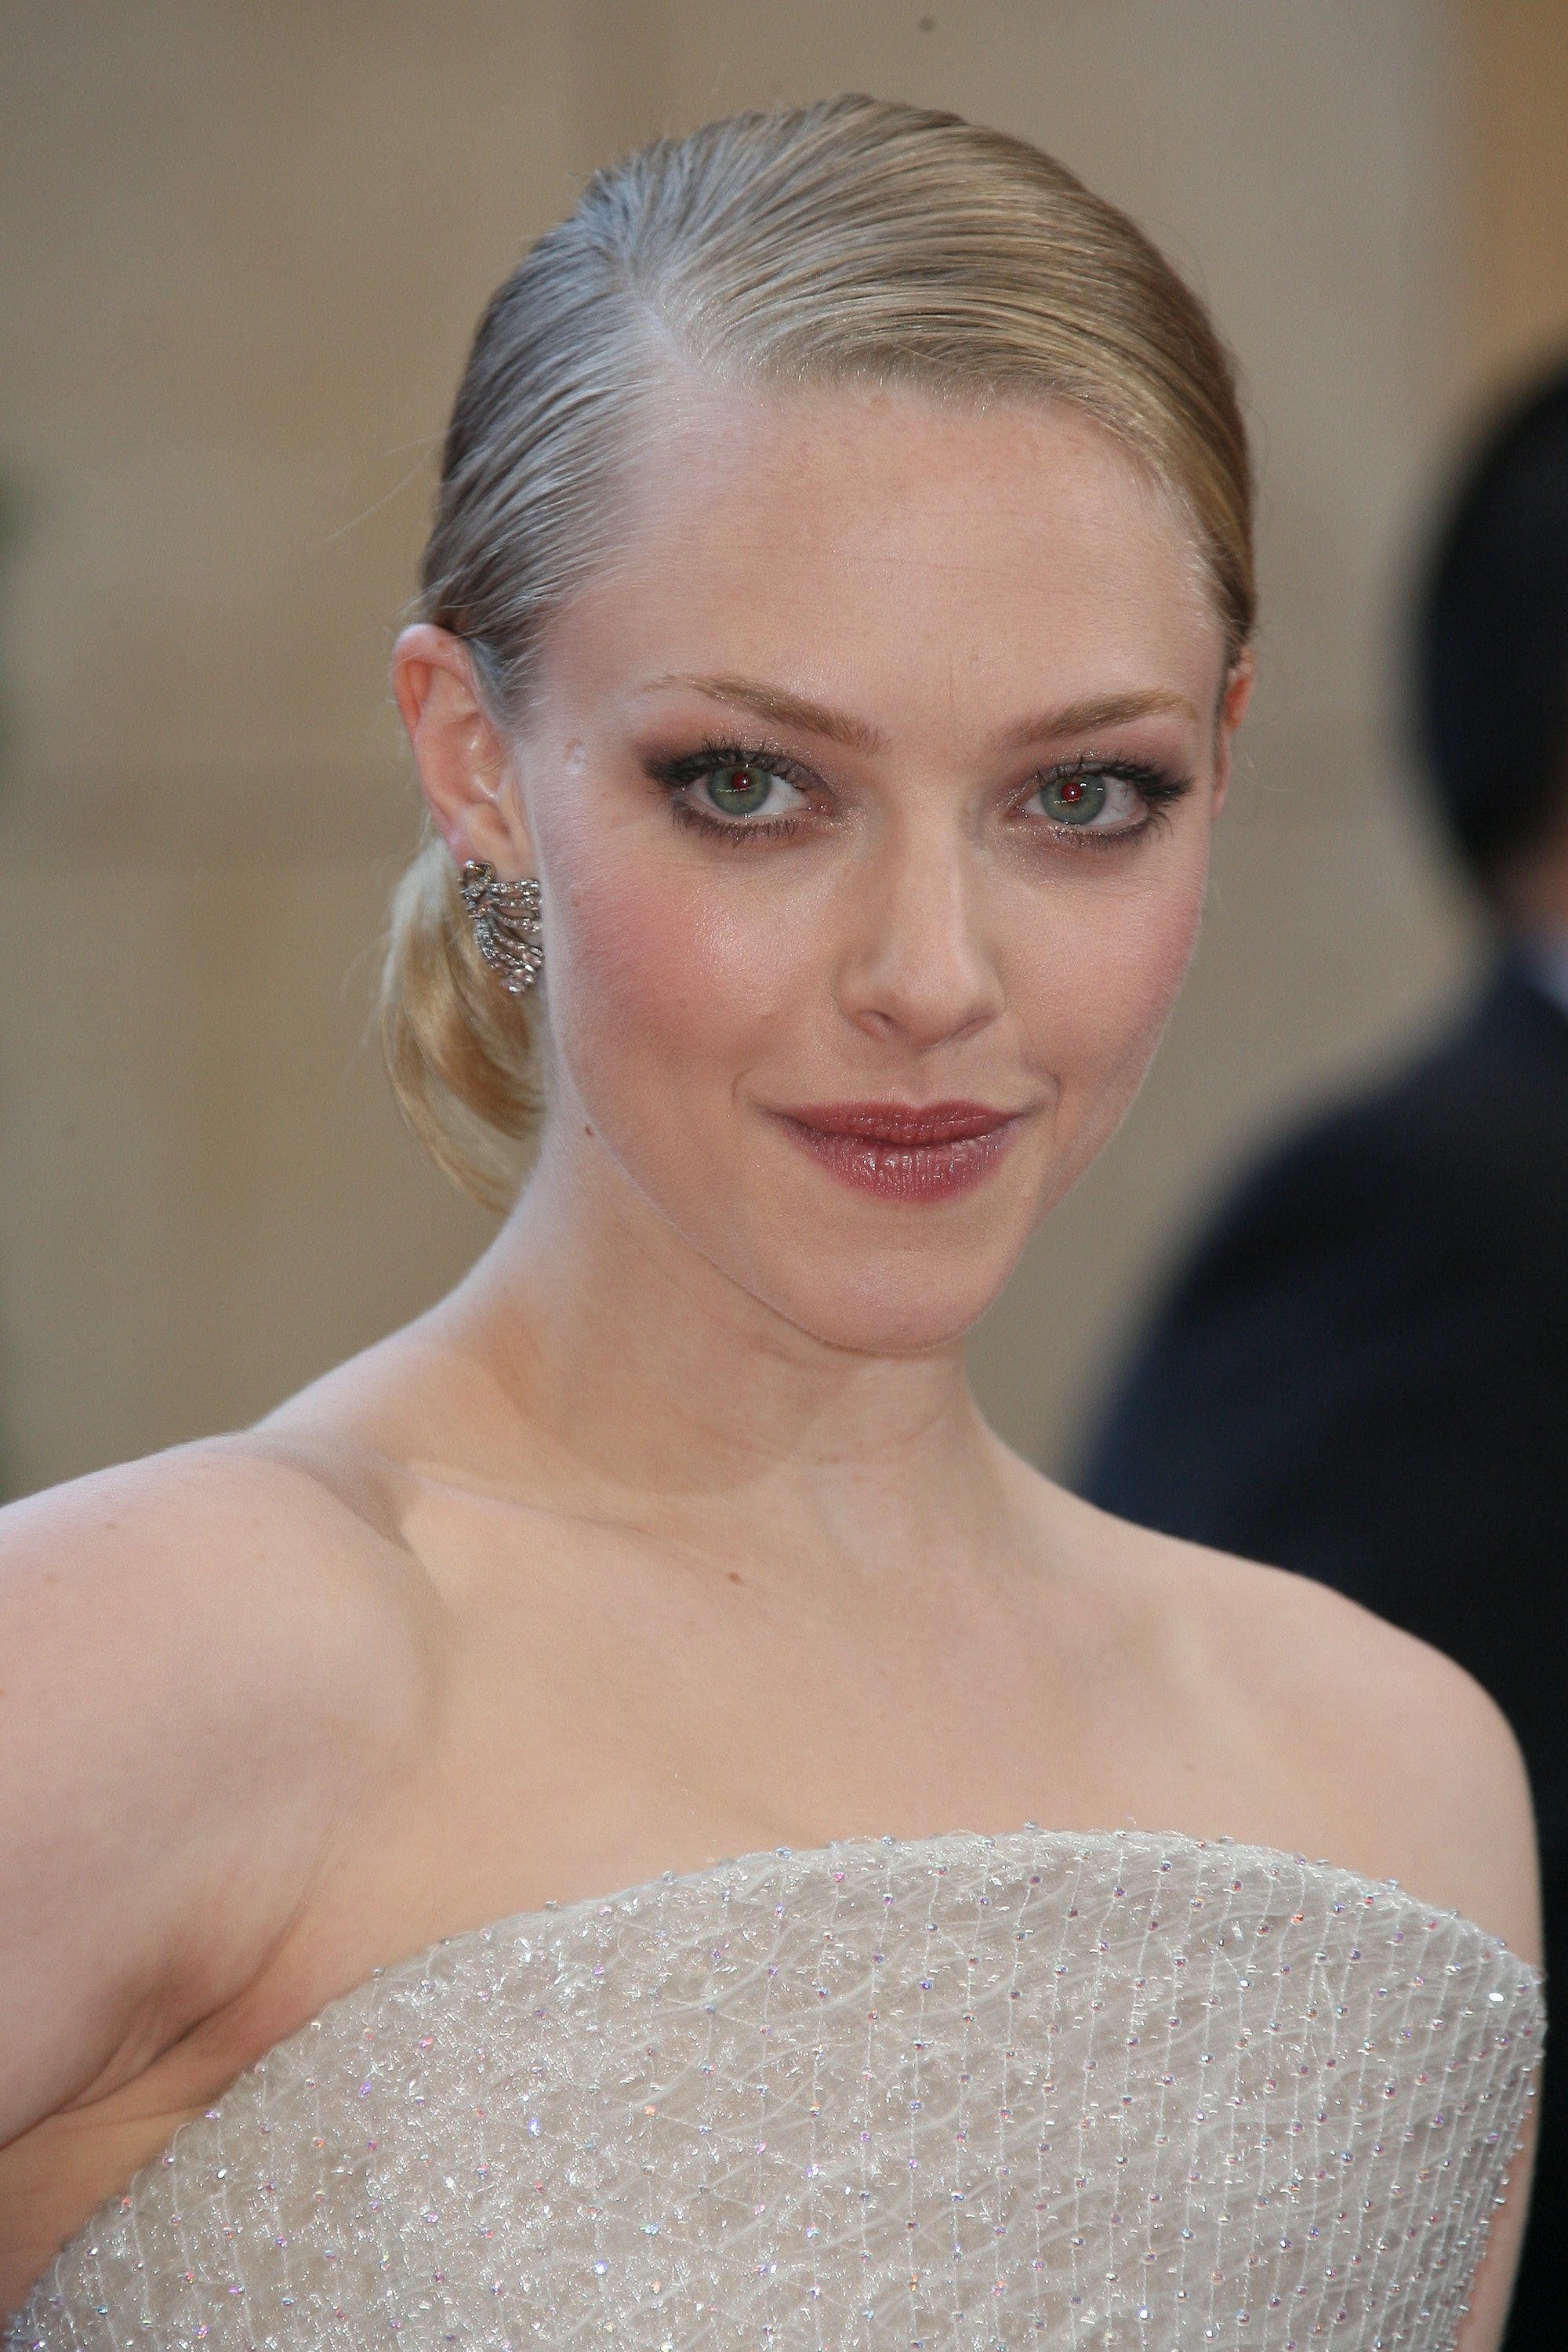 17 Amanda Seyfried Hairstyles To Try At Home Because She Is A Queen